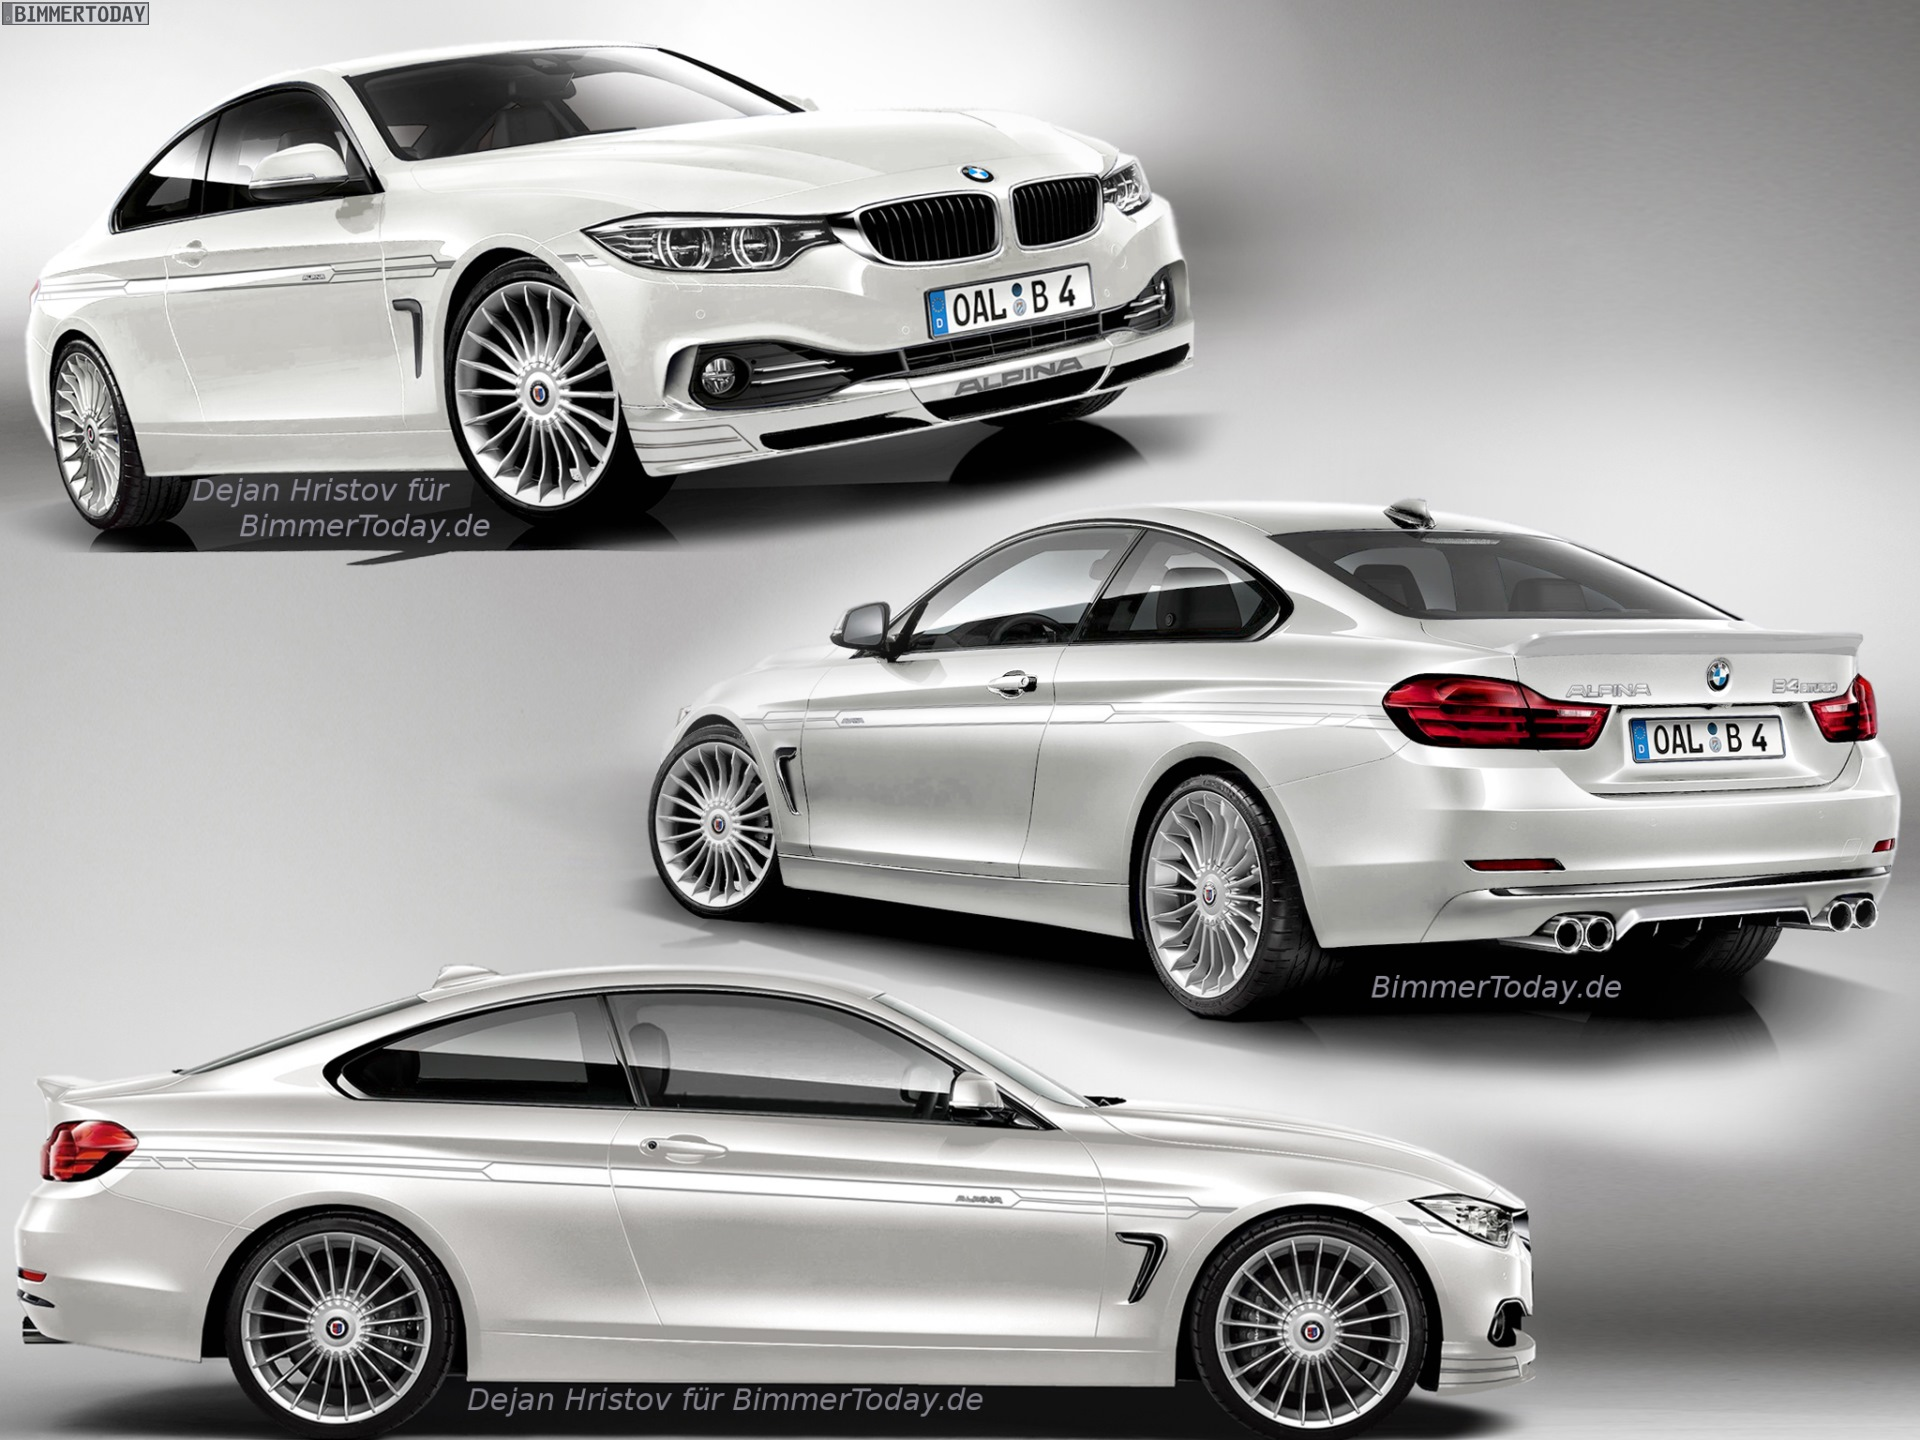 Alpina B4 F32 2013 - now Coupe #3